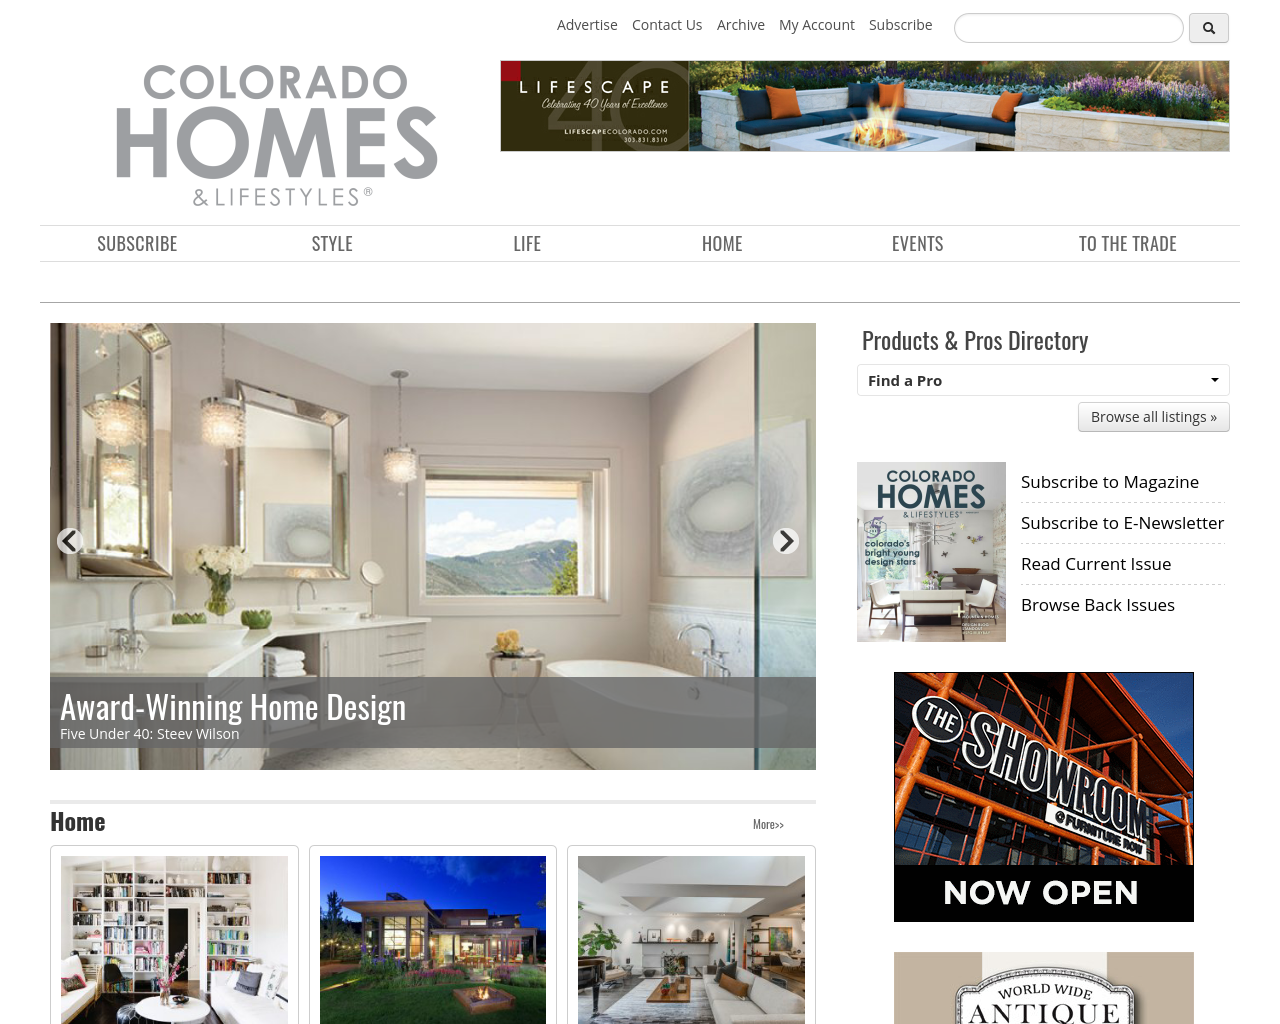 Colorado-Homes-and-Lifestyles-Advertising-Reviews-Pricing